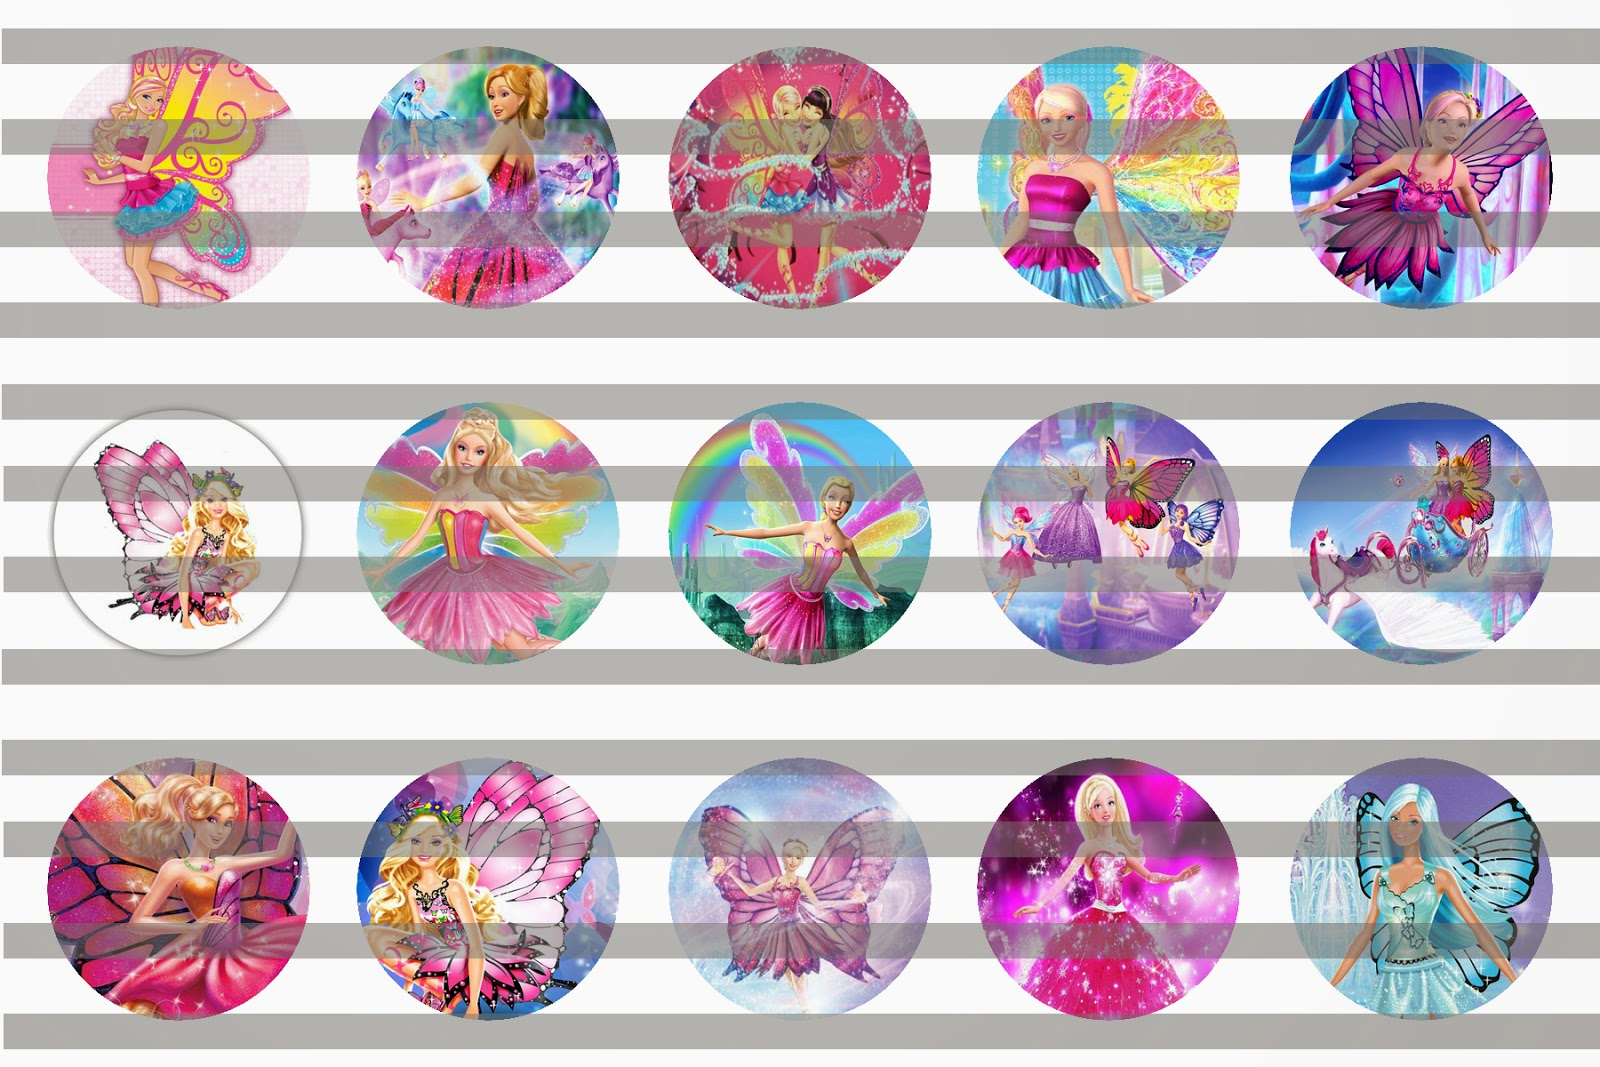 Unique bottle cap designs barbie fairies bottle cap image for Cool bottle cap designs